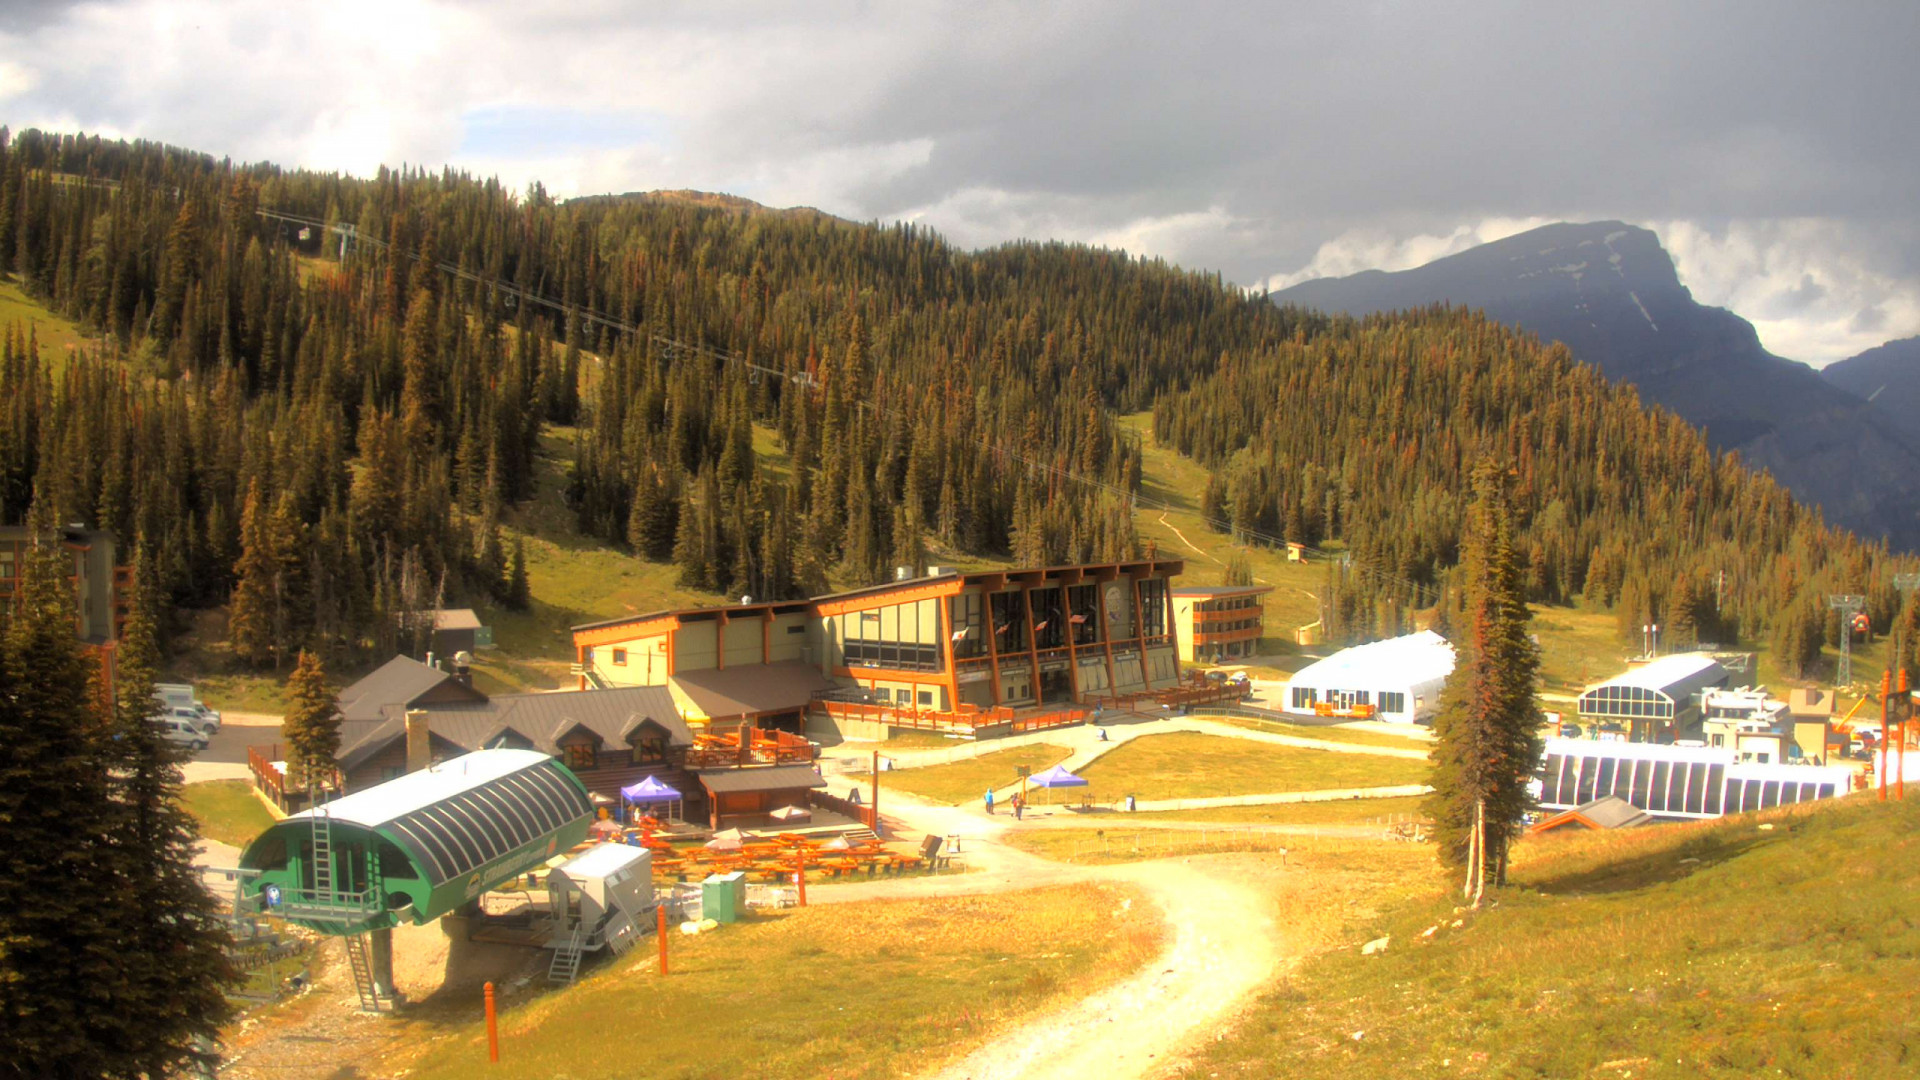 Sunshine Village Ski Resort Web Cams - Sunshine Mountain Lodge